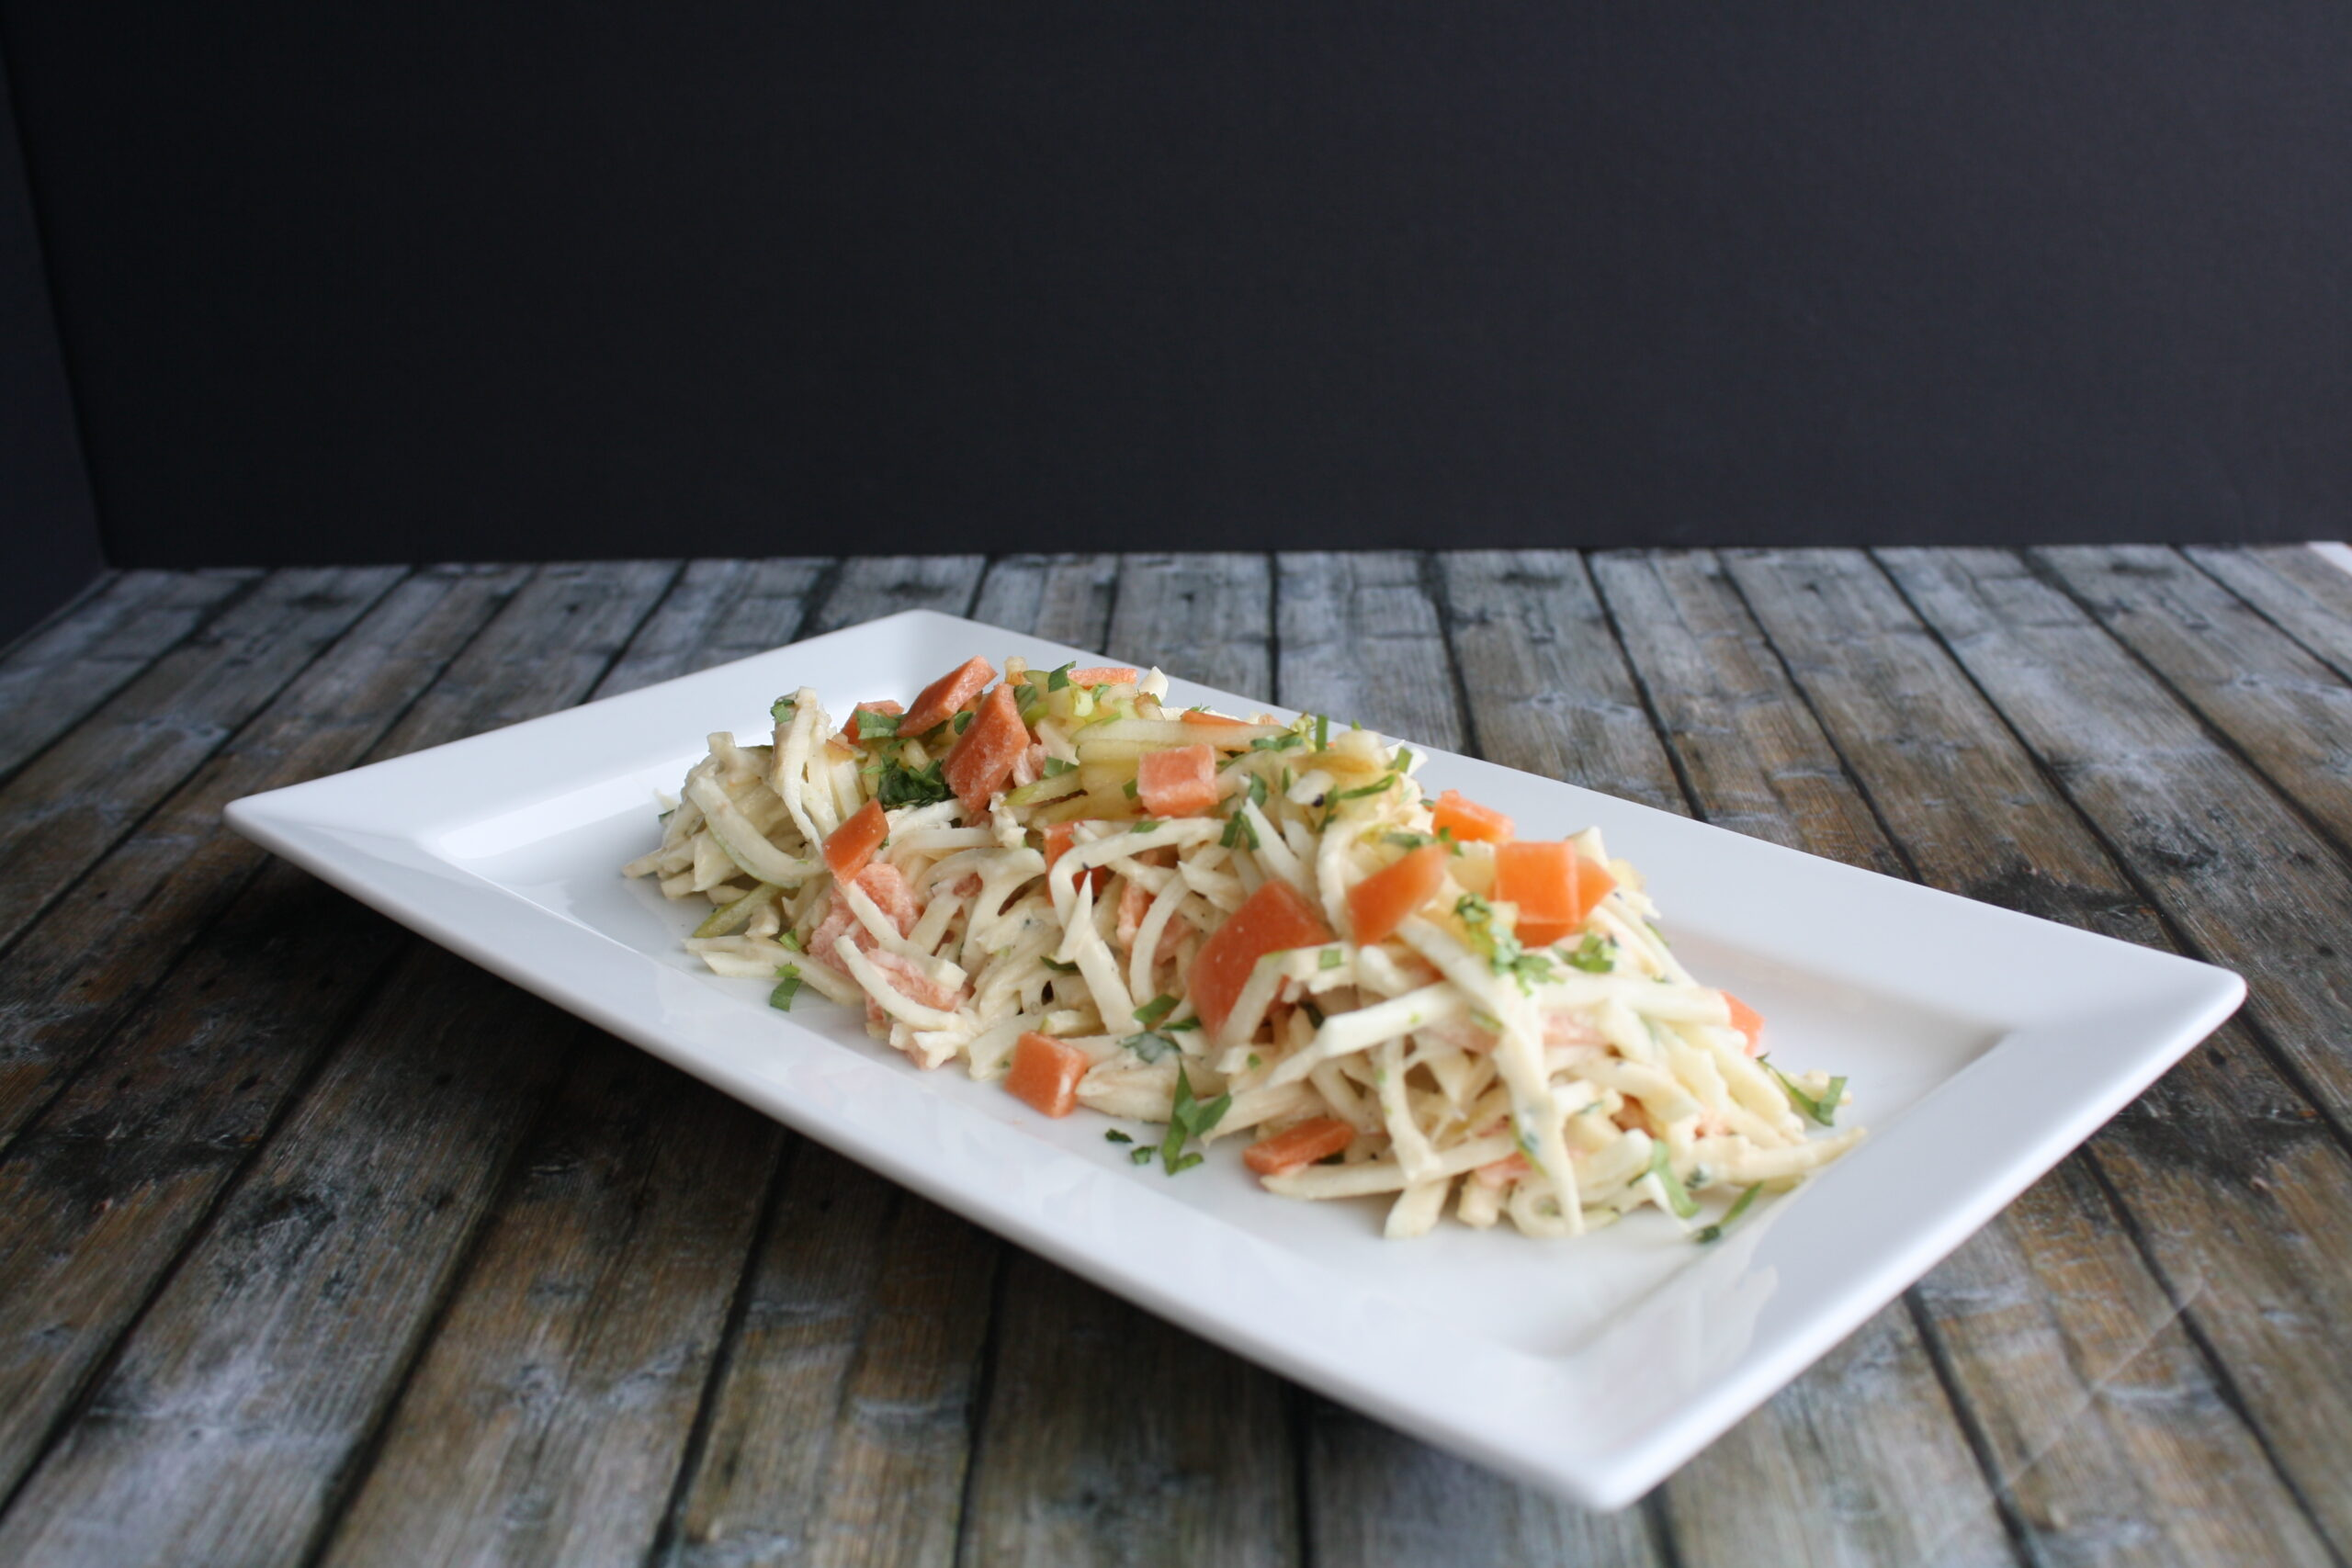 Celeriac Salad and Smoked Trout